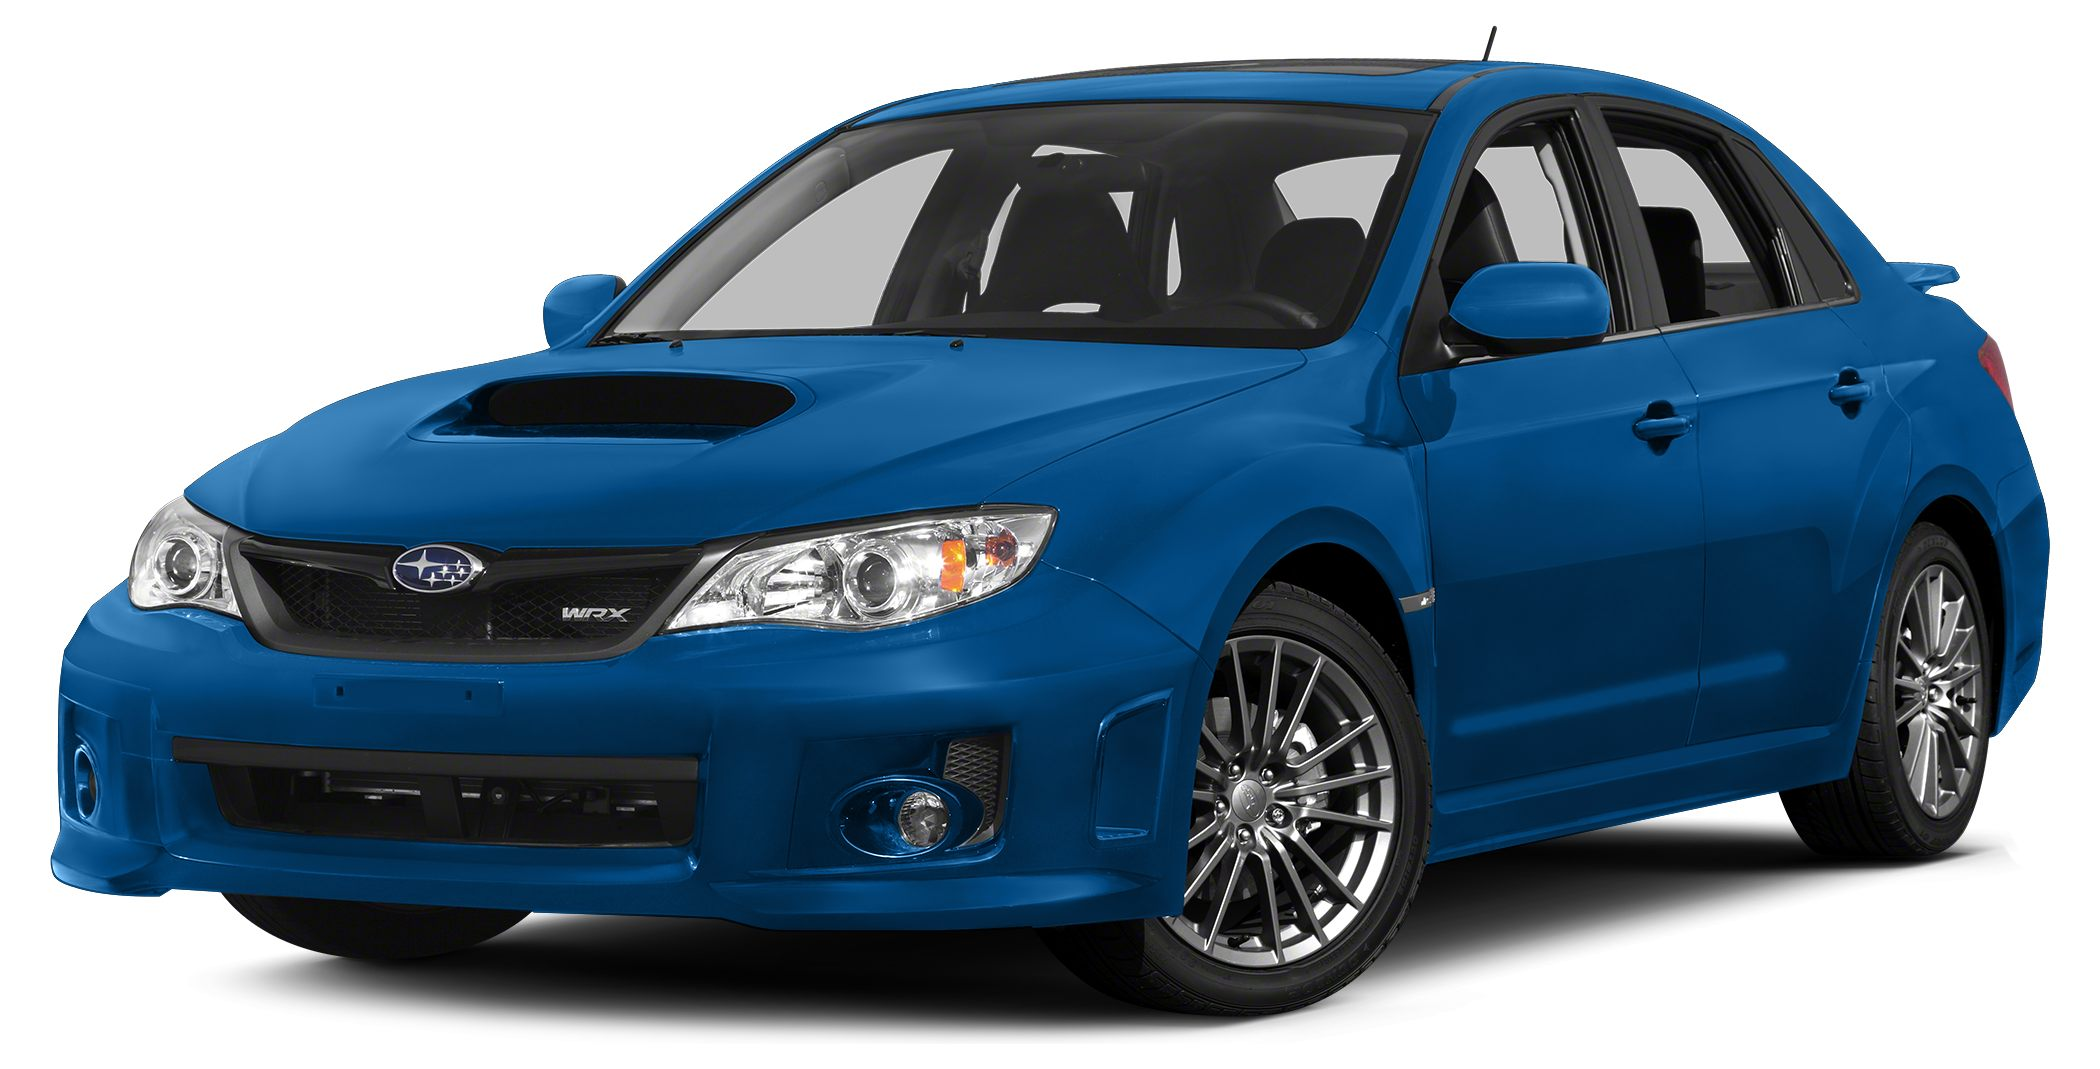 2014 Subaru Impreza WRX Limited WE SELL OUR VEHICLES AT WHOLESALE PRICES AND STAND BEHIND OUR CARS